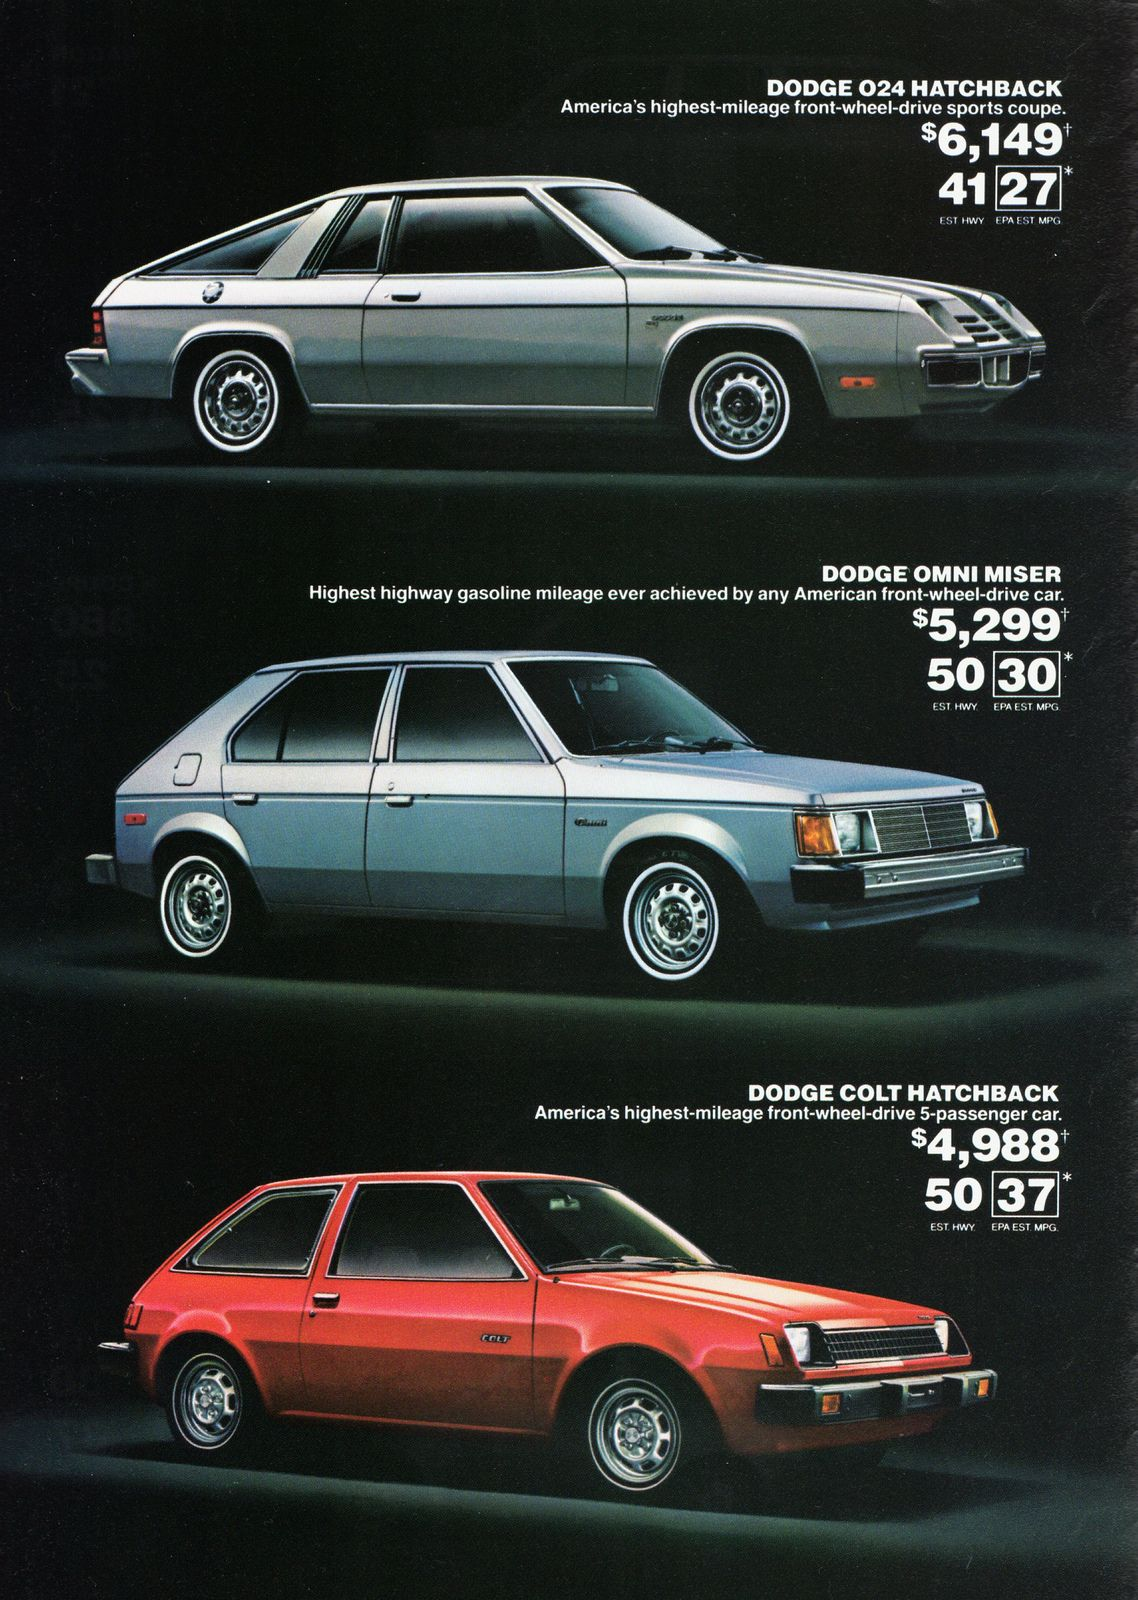 1981 Dodge 024, Omni, & Colt | Economy car, Lineup and Cars